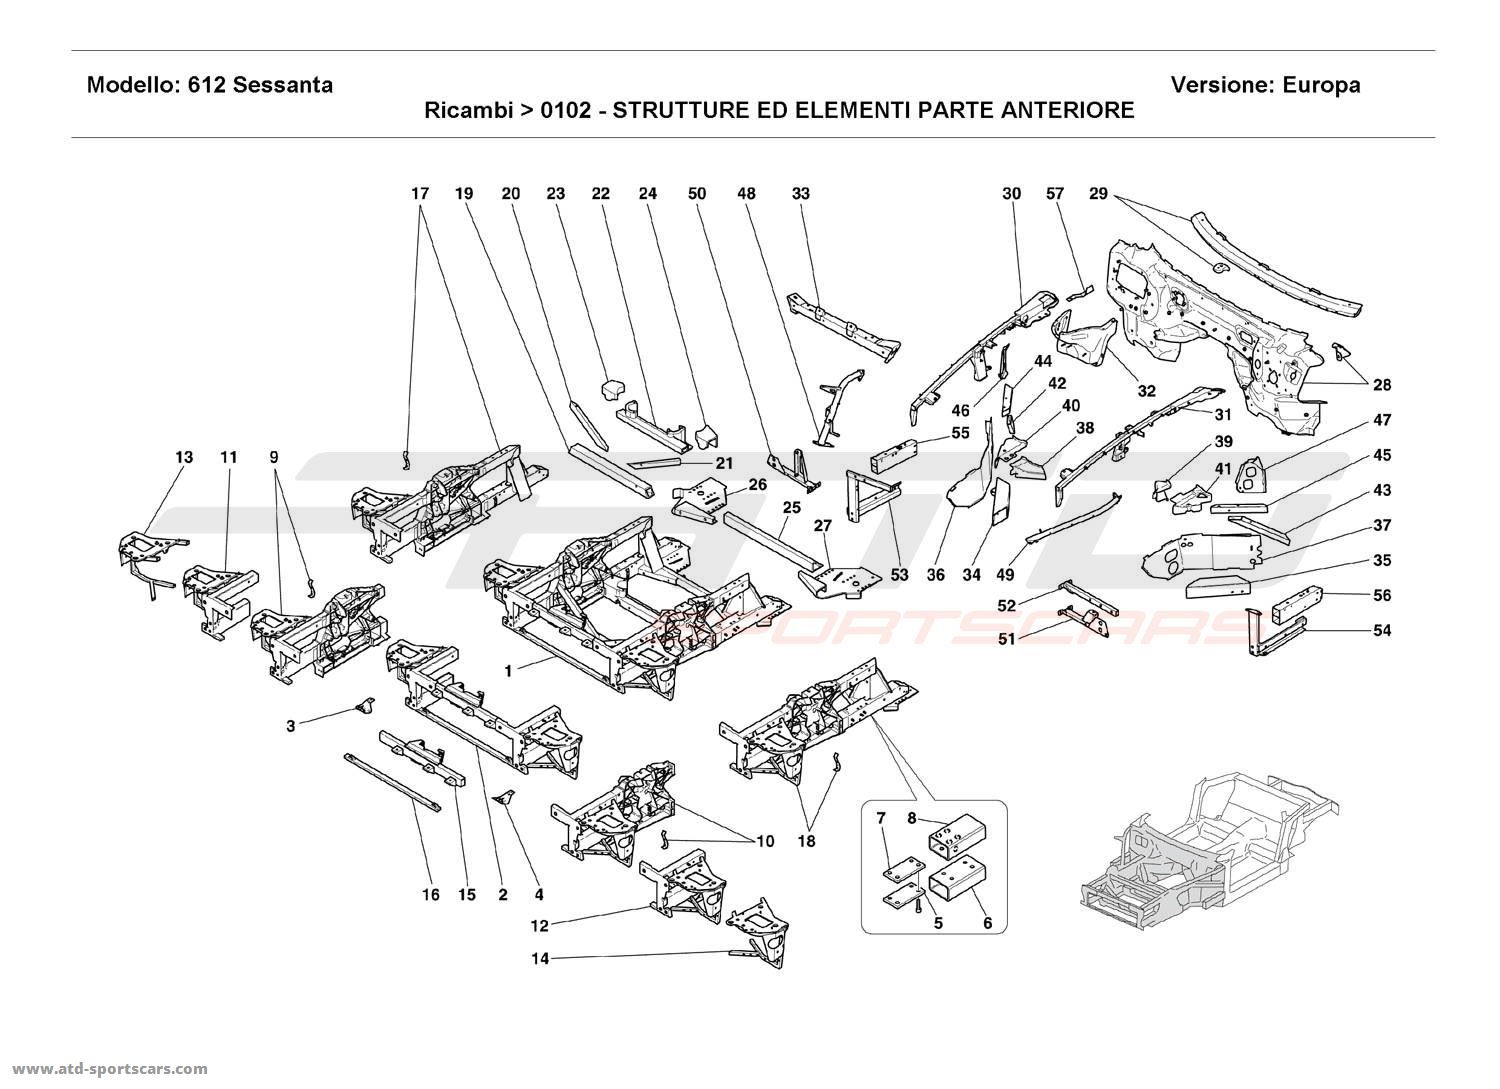 Ferrari 612 Sessanta FRONT STRUCTURES AND COMPONENTS